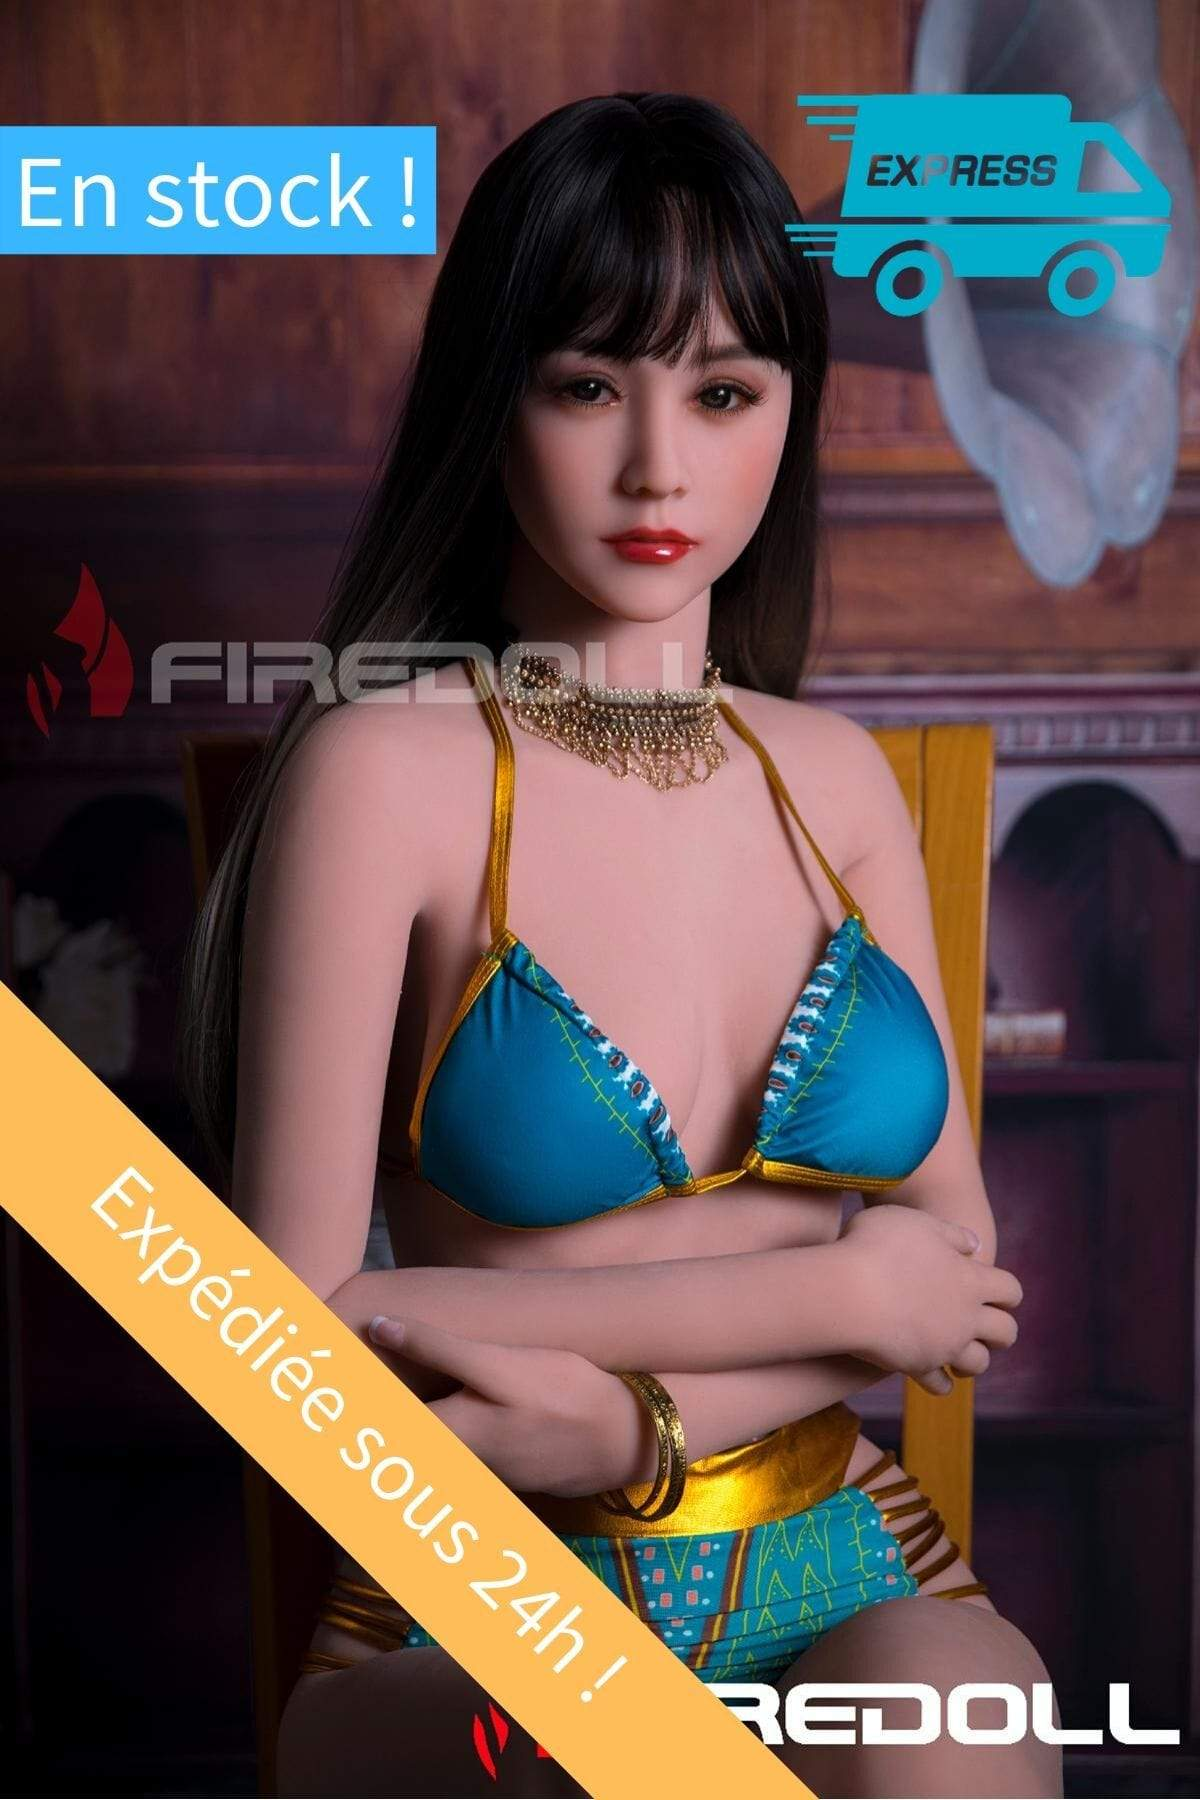 Realdoll en stock Fire Doll 166 cm bonnet C - Amia belle asiatique